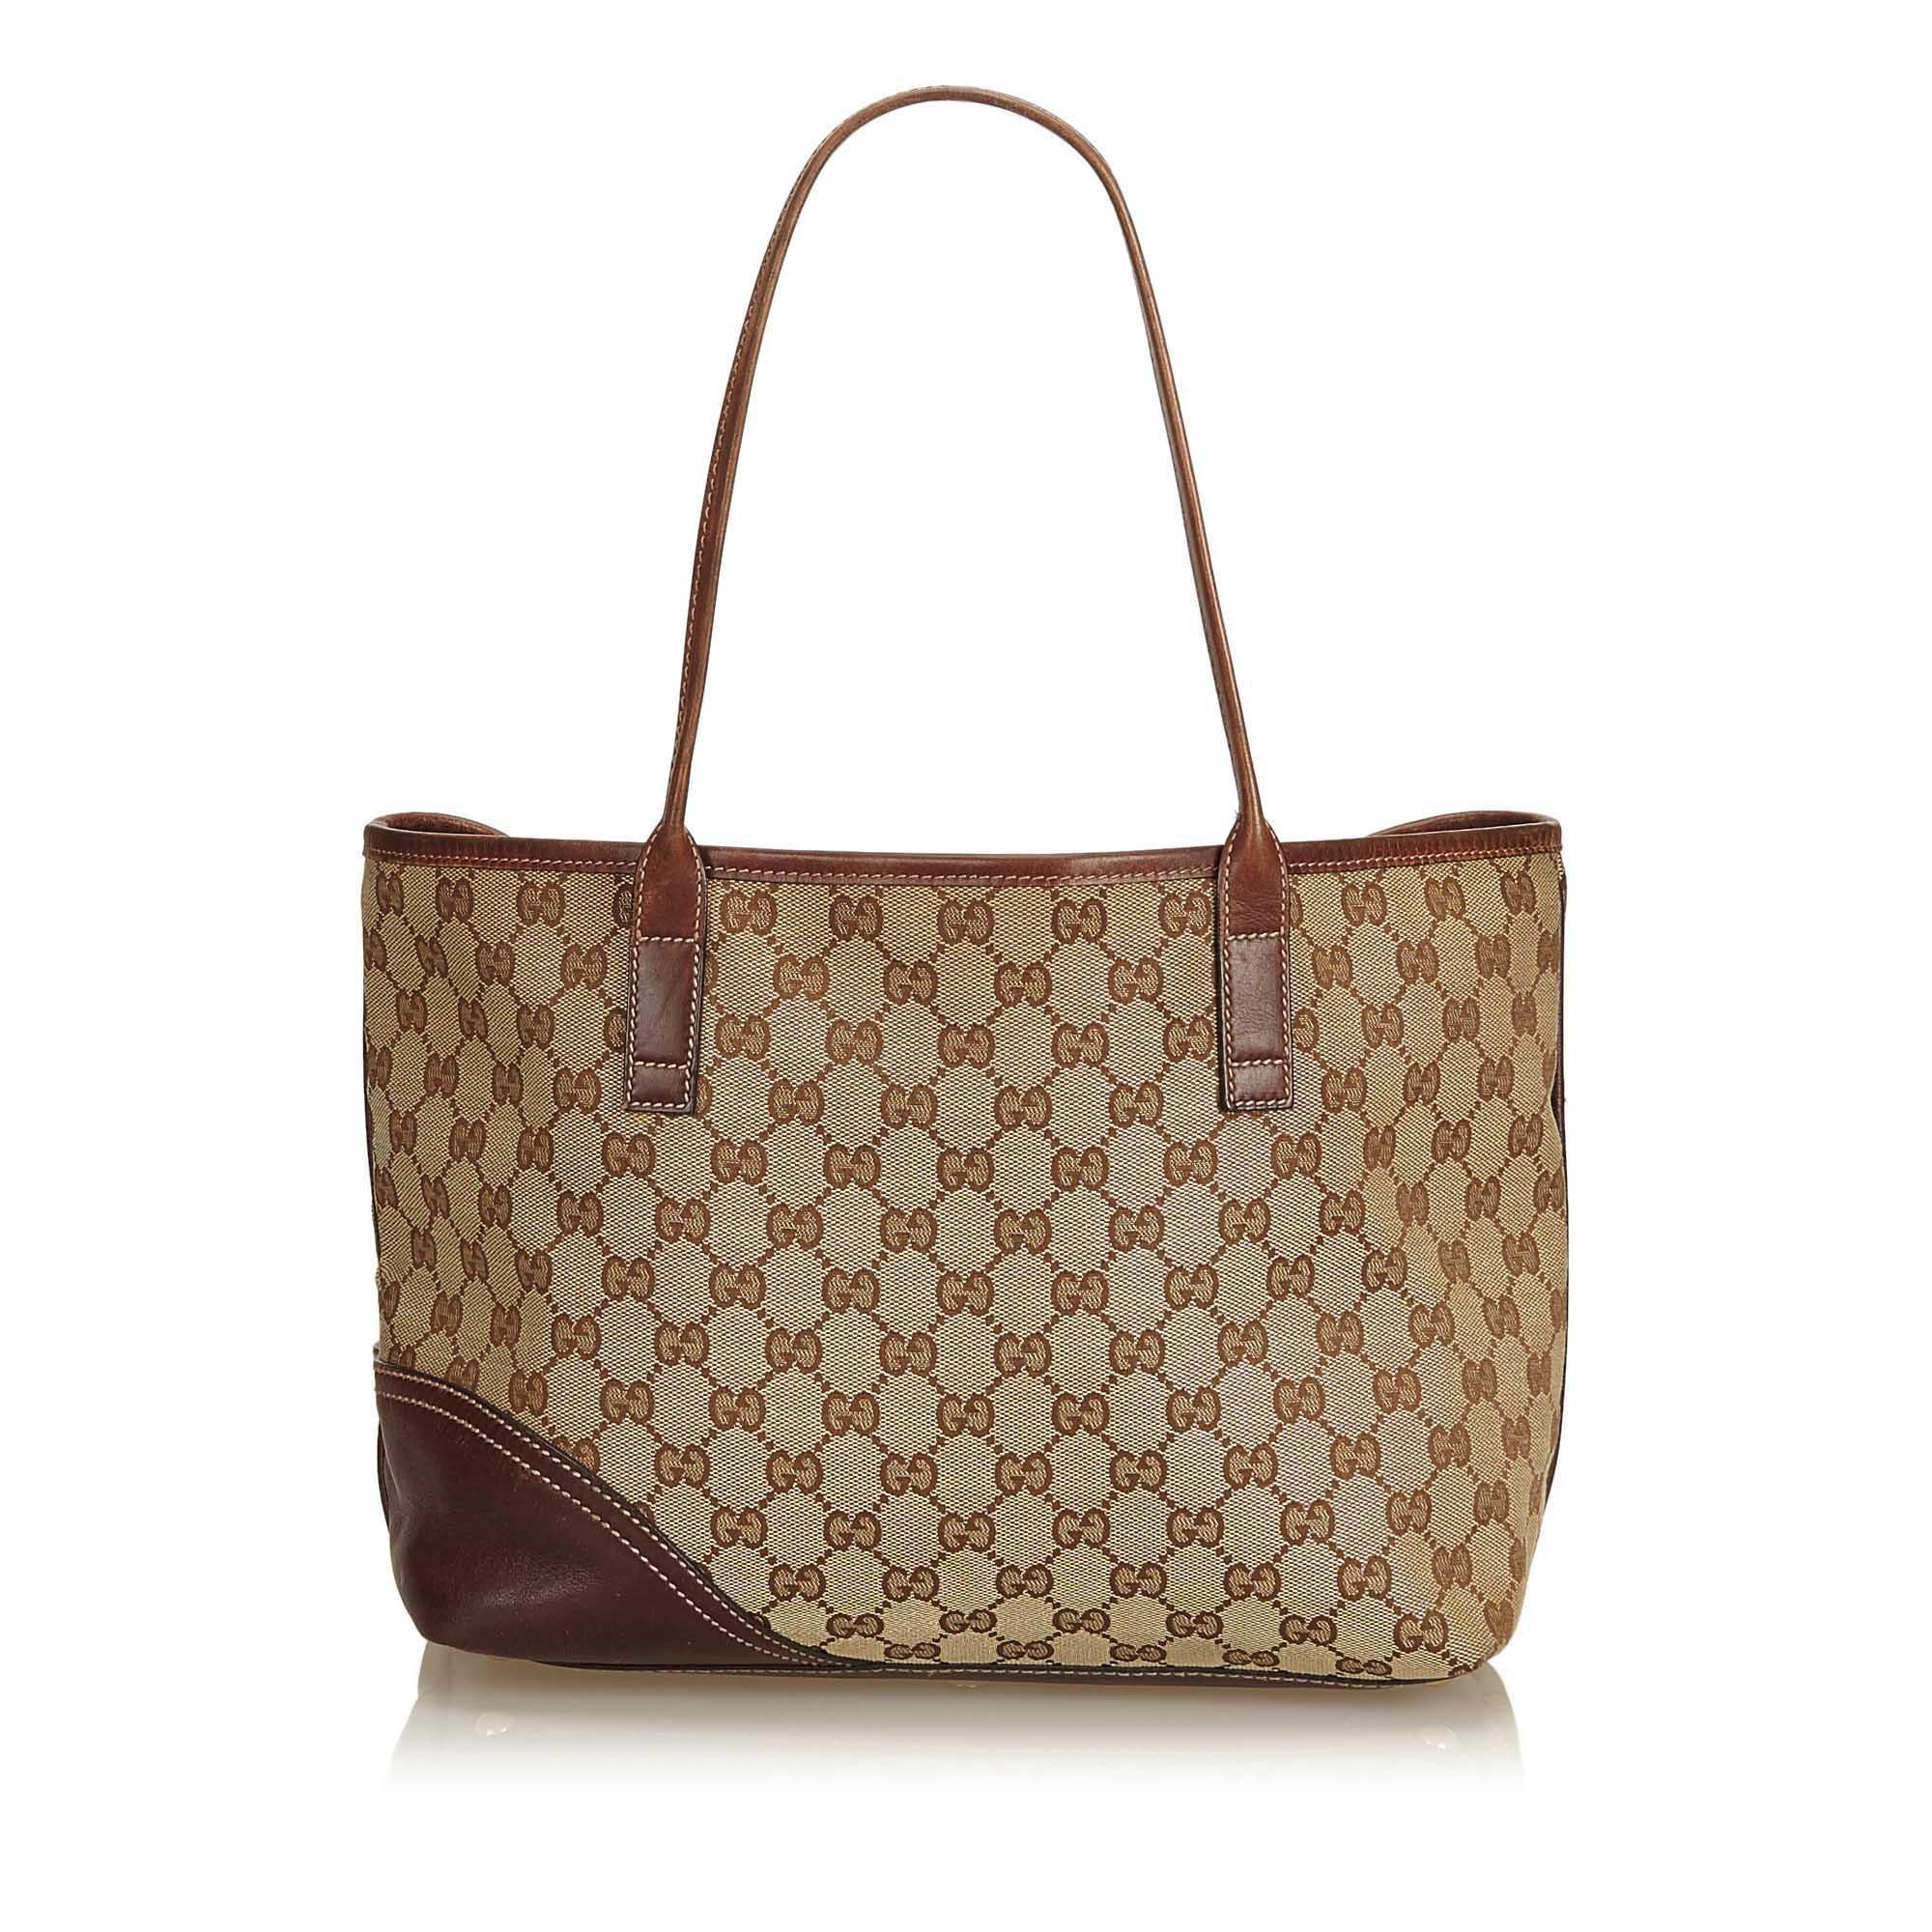 c2faa68b7310 Gucci Brown x Beige Guccissima Canvas Britt Tote Bag at 1stdibs